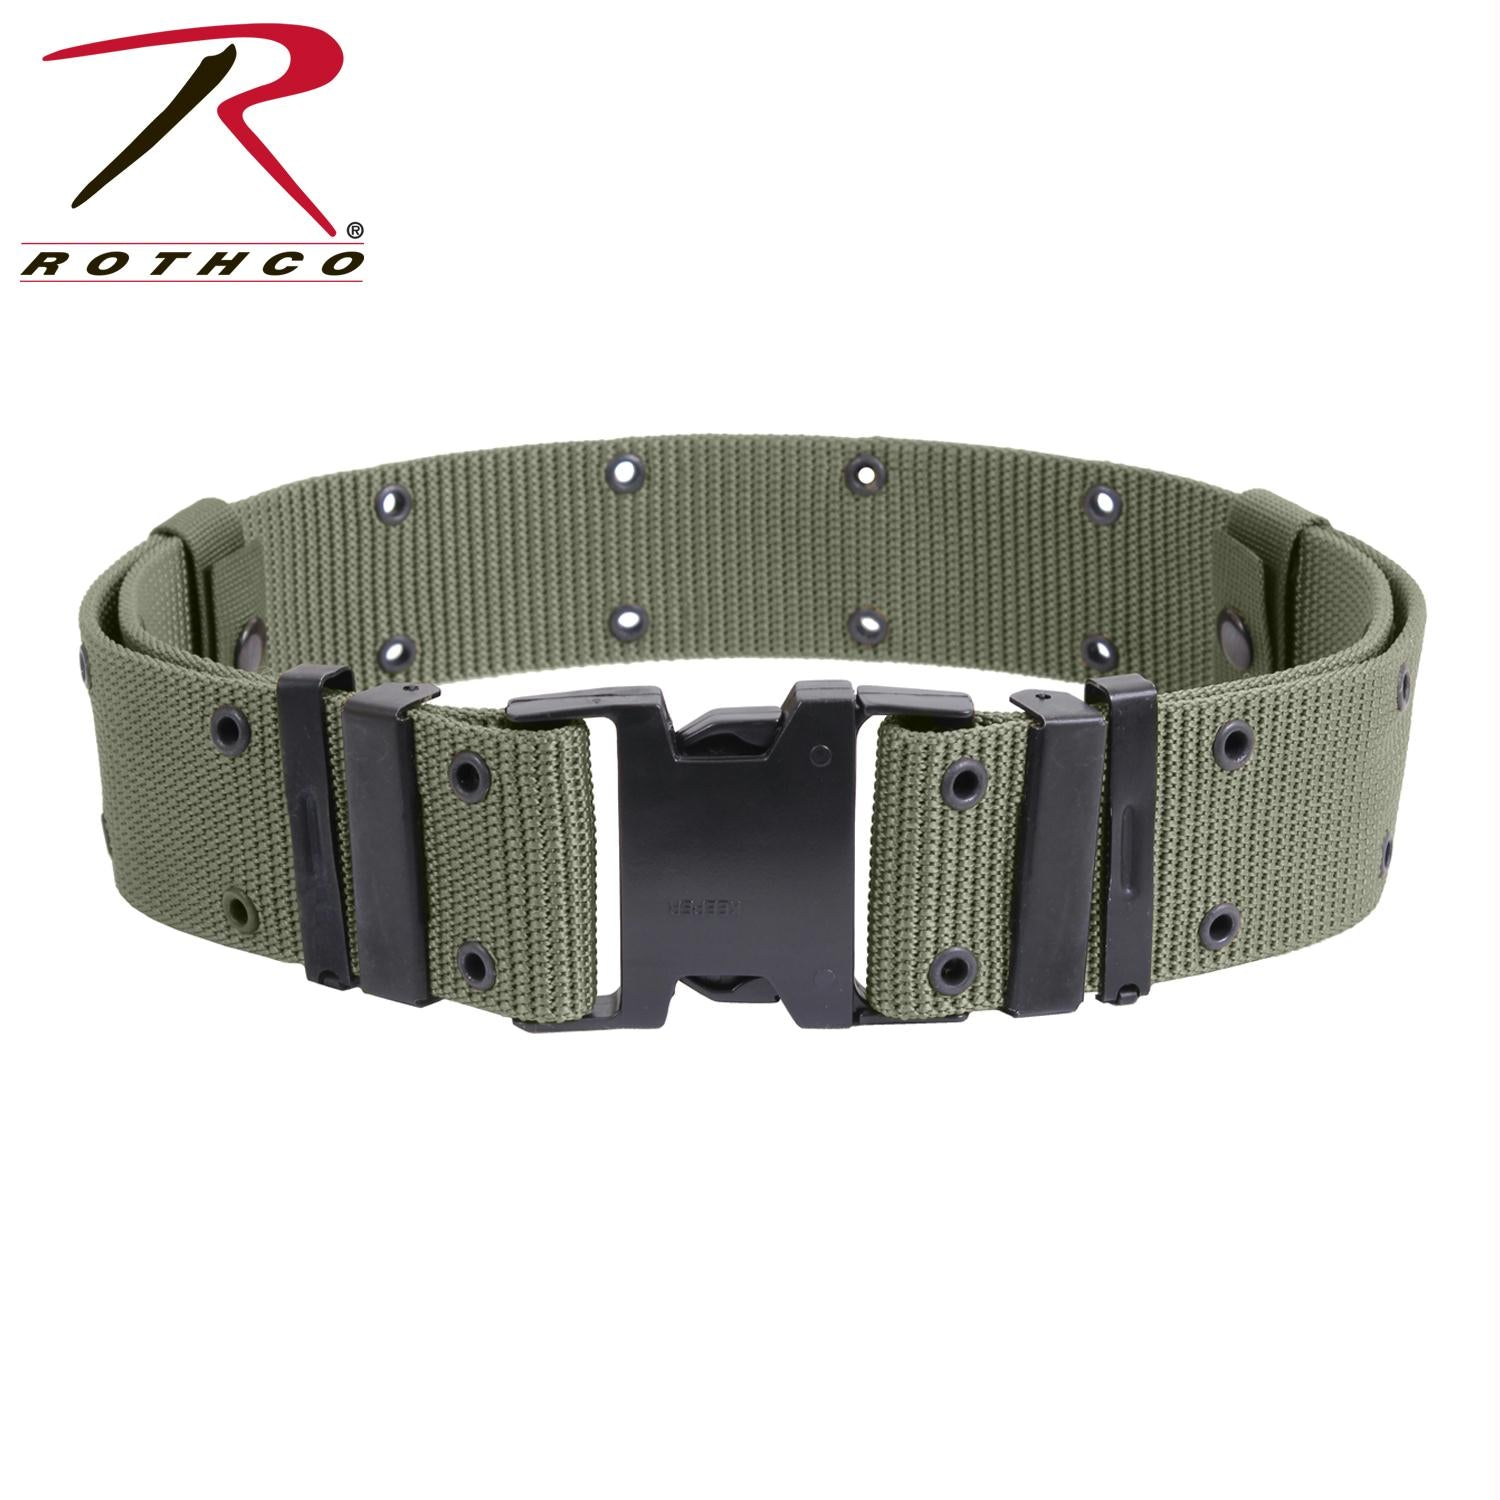 Rothco New Issue Marine Corps Style Quick Release Pistol Belts - Foliage Green / M